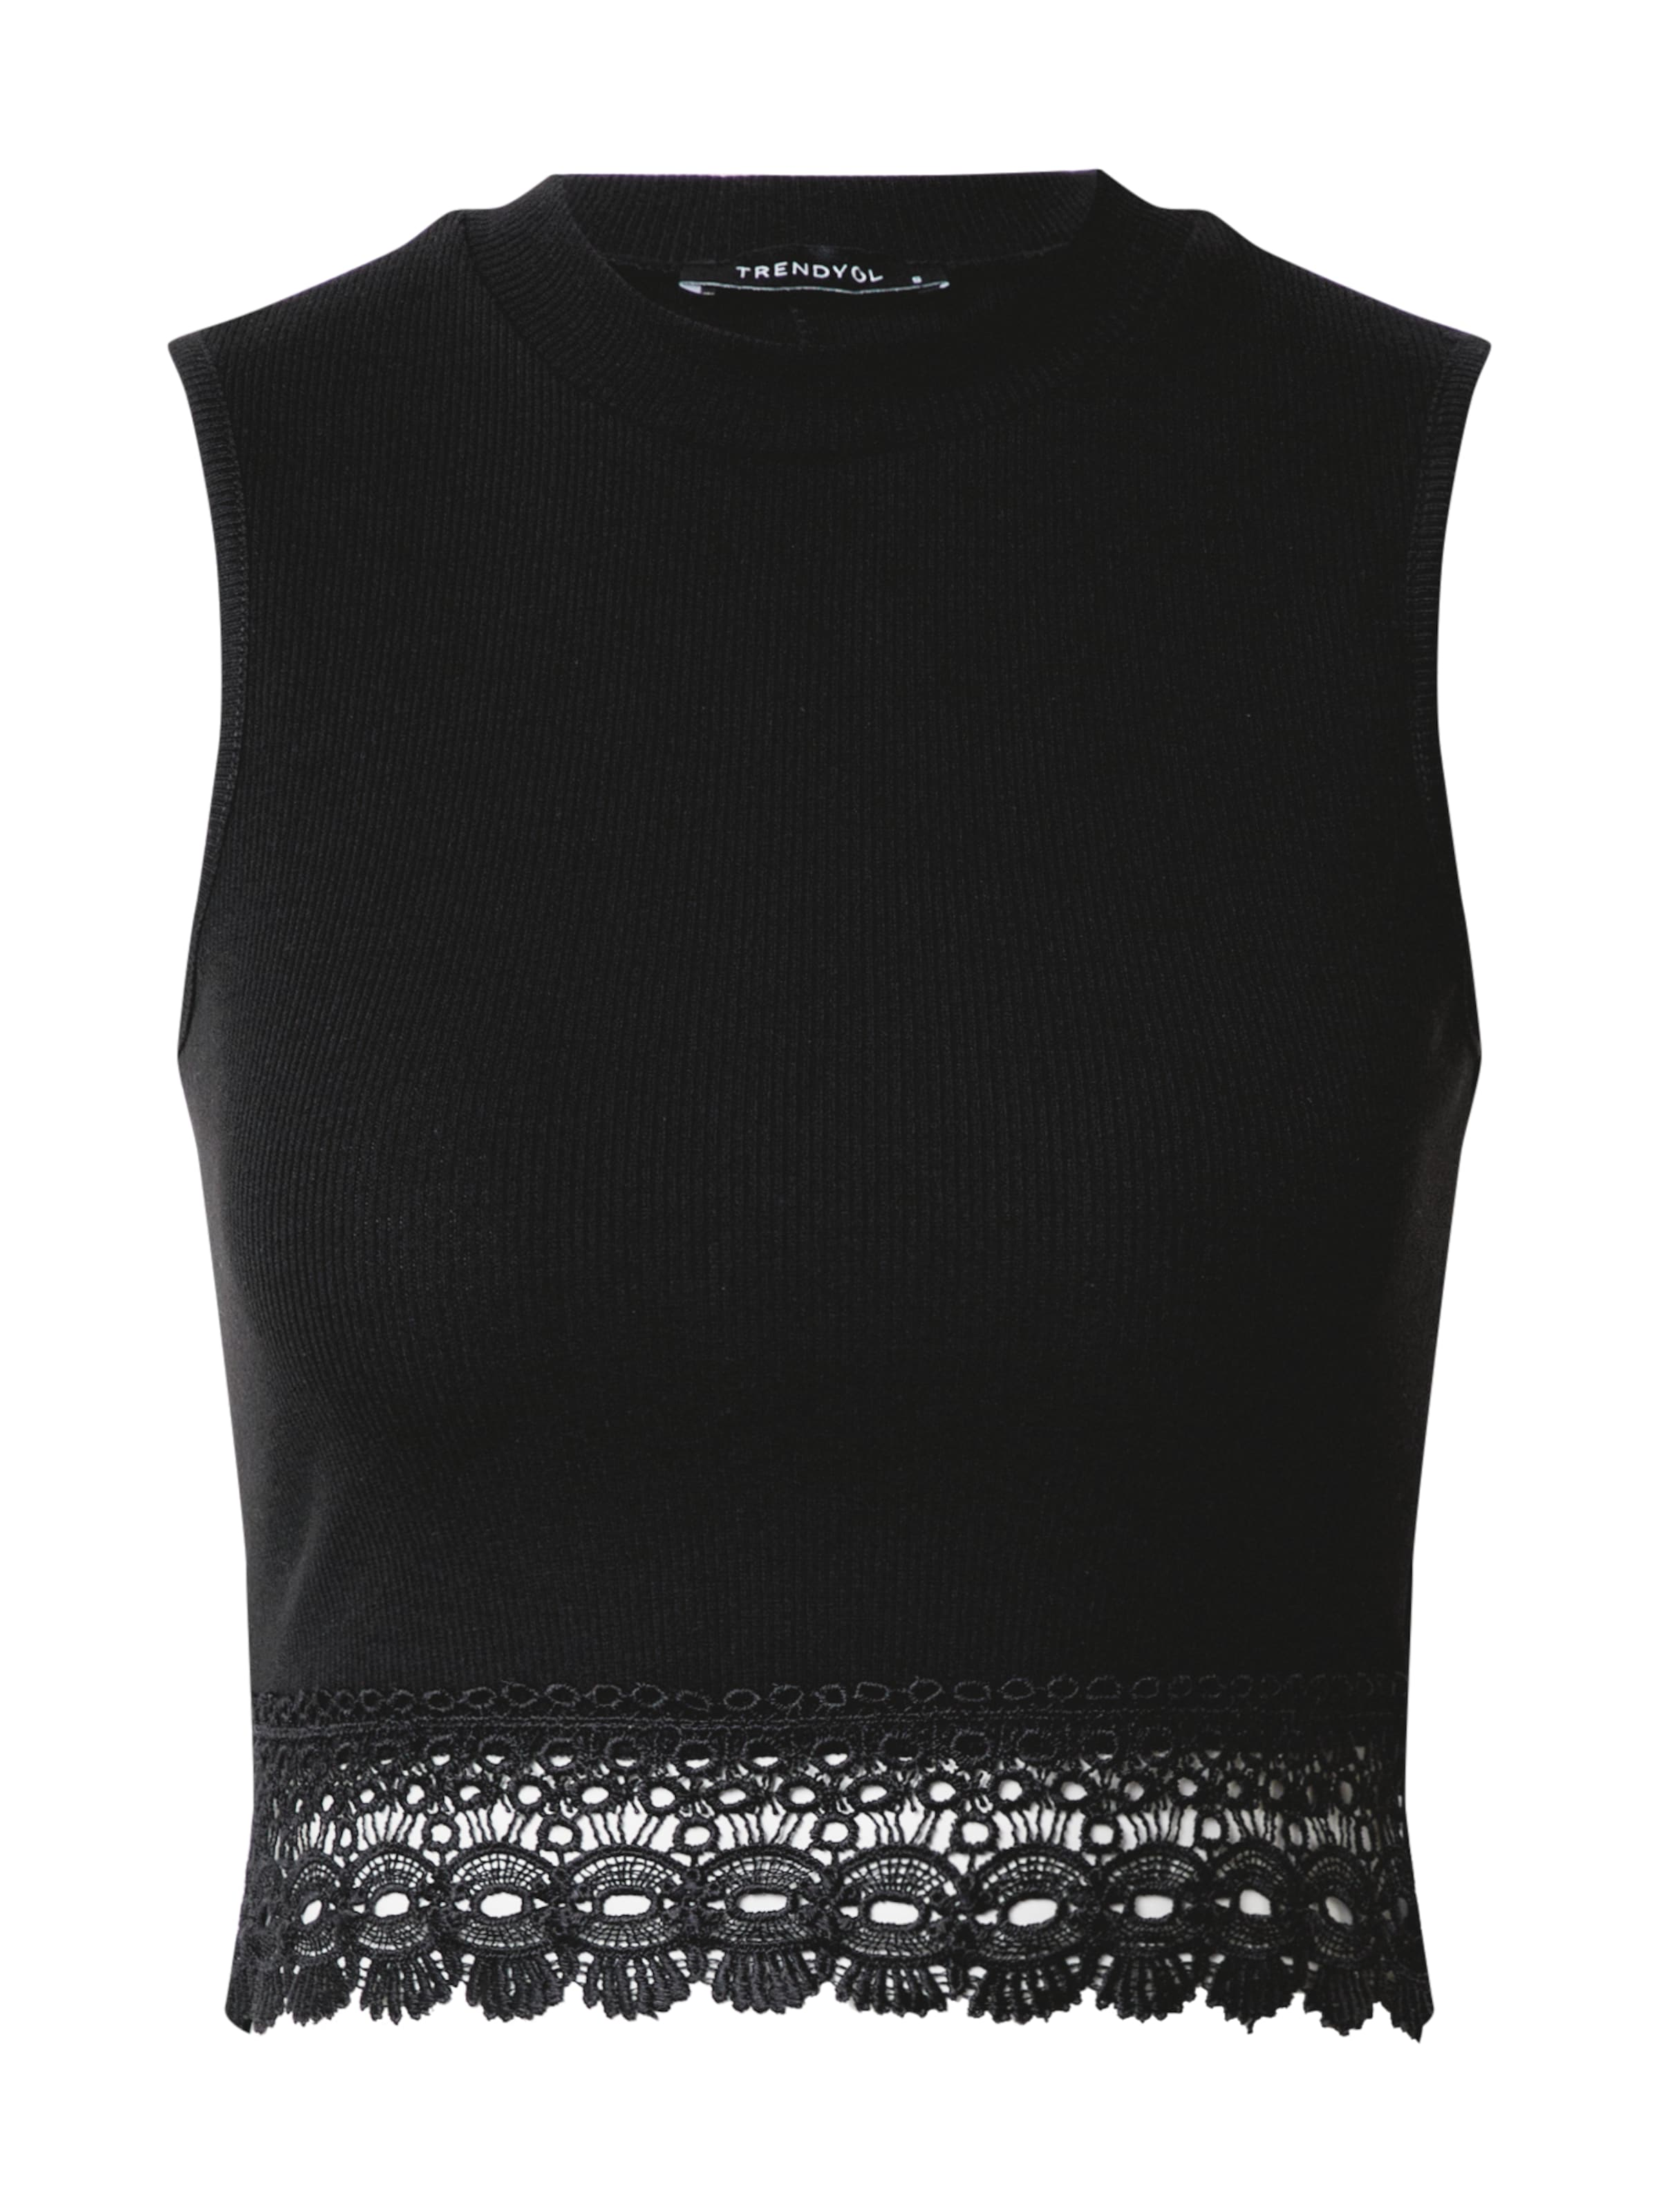 Trendyol Top in schwarz